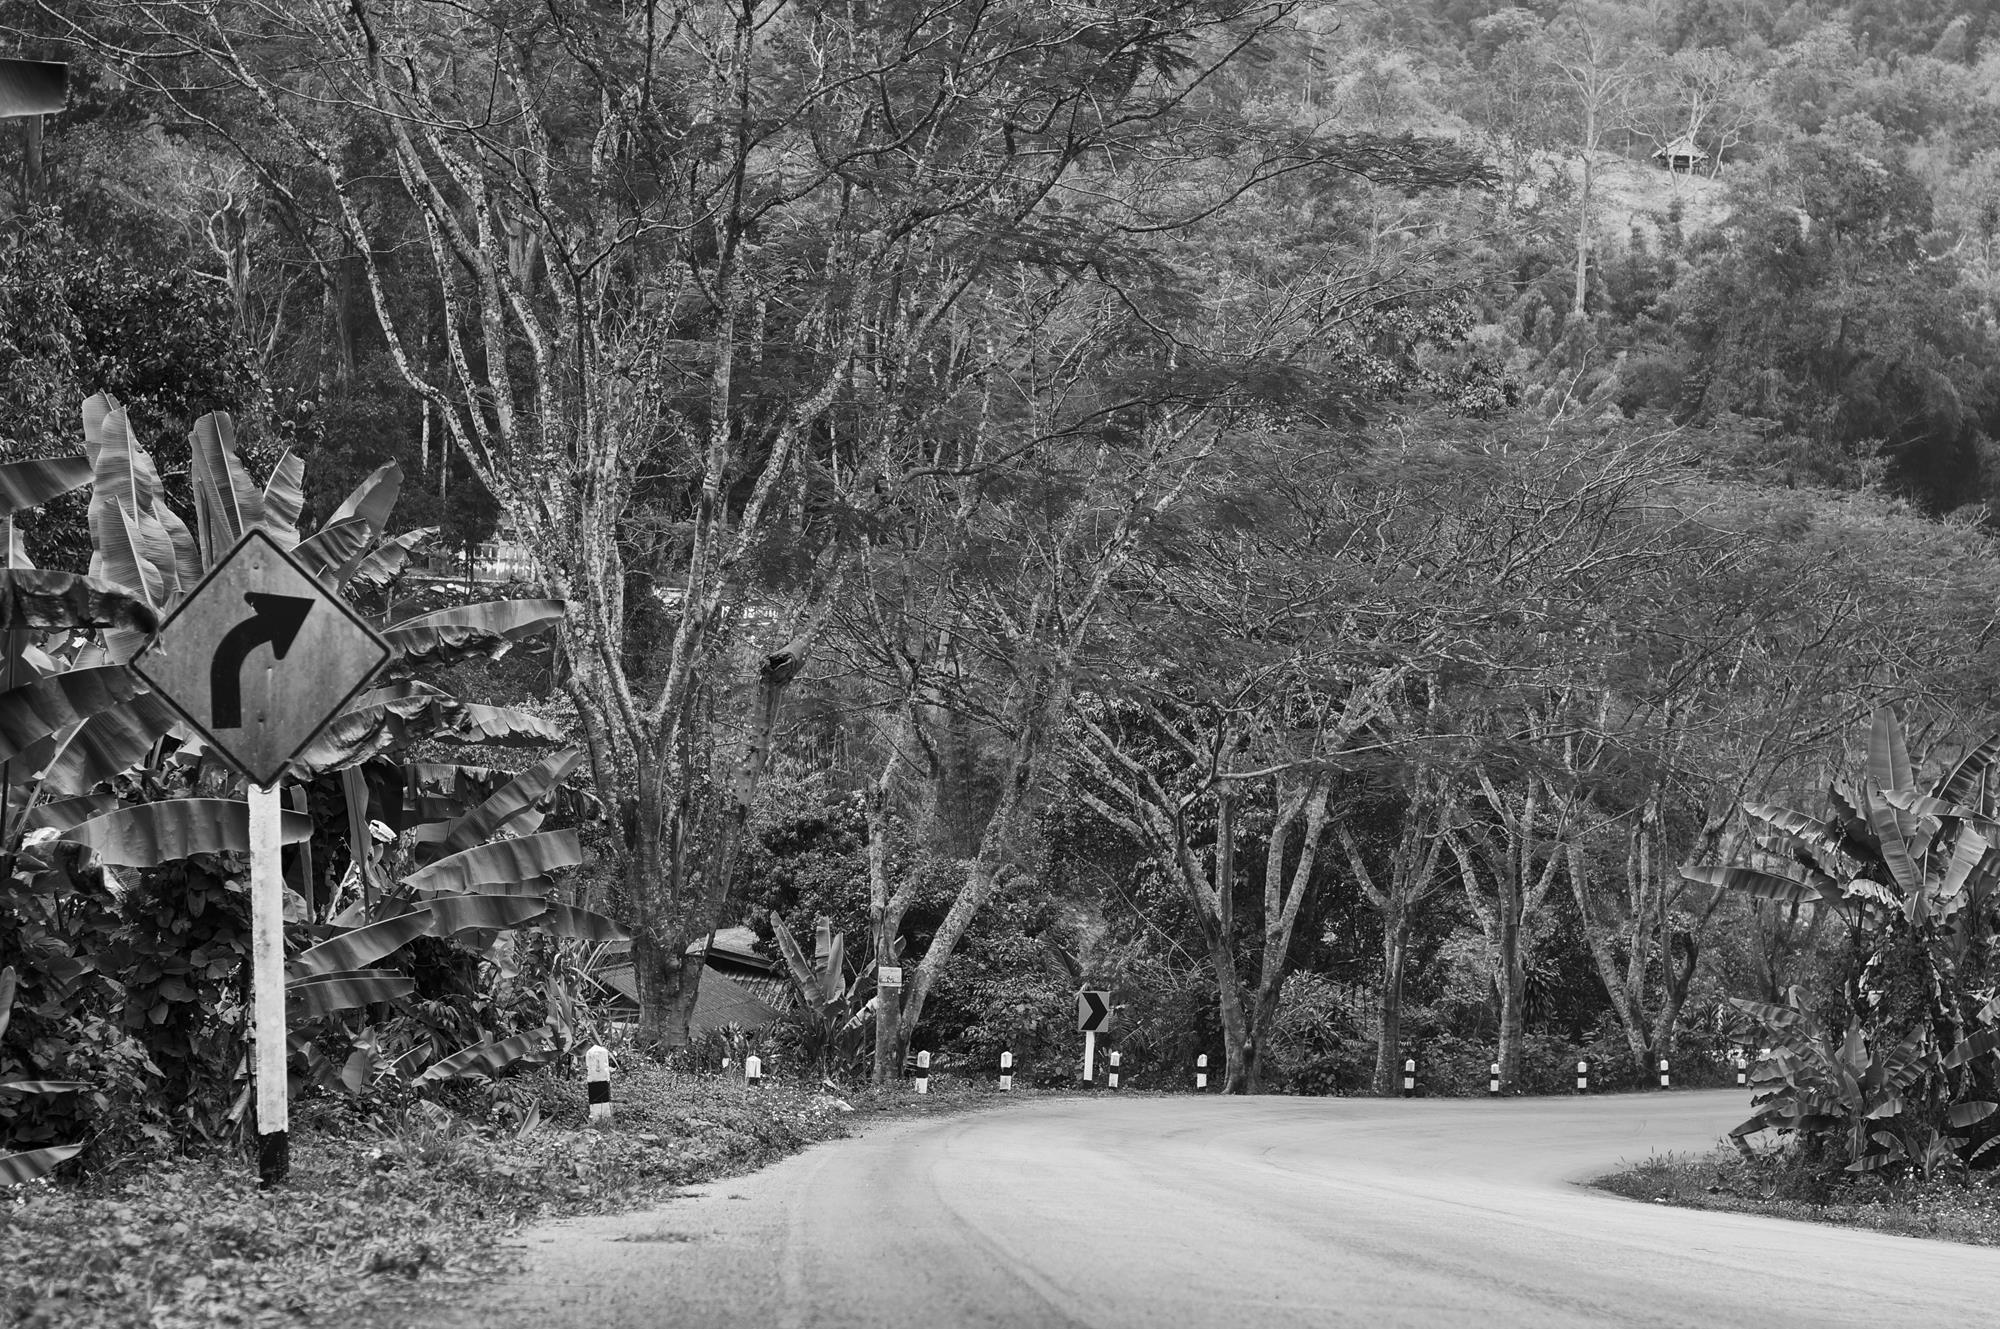 road chiang mai to pai